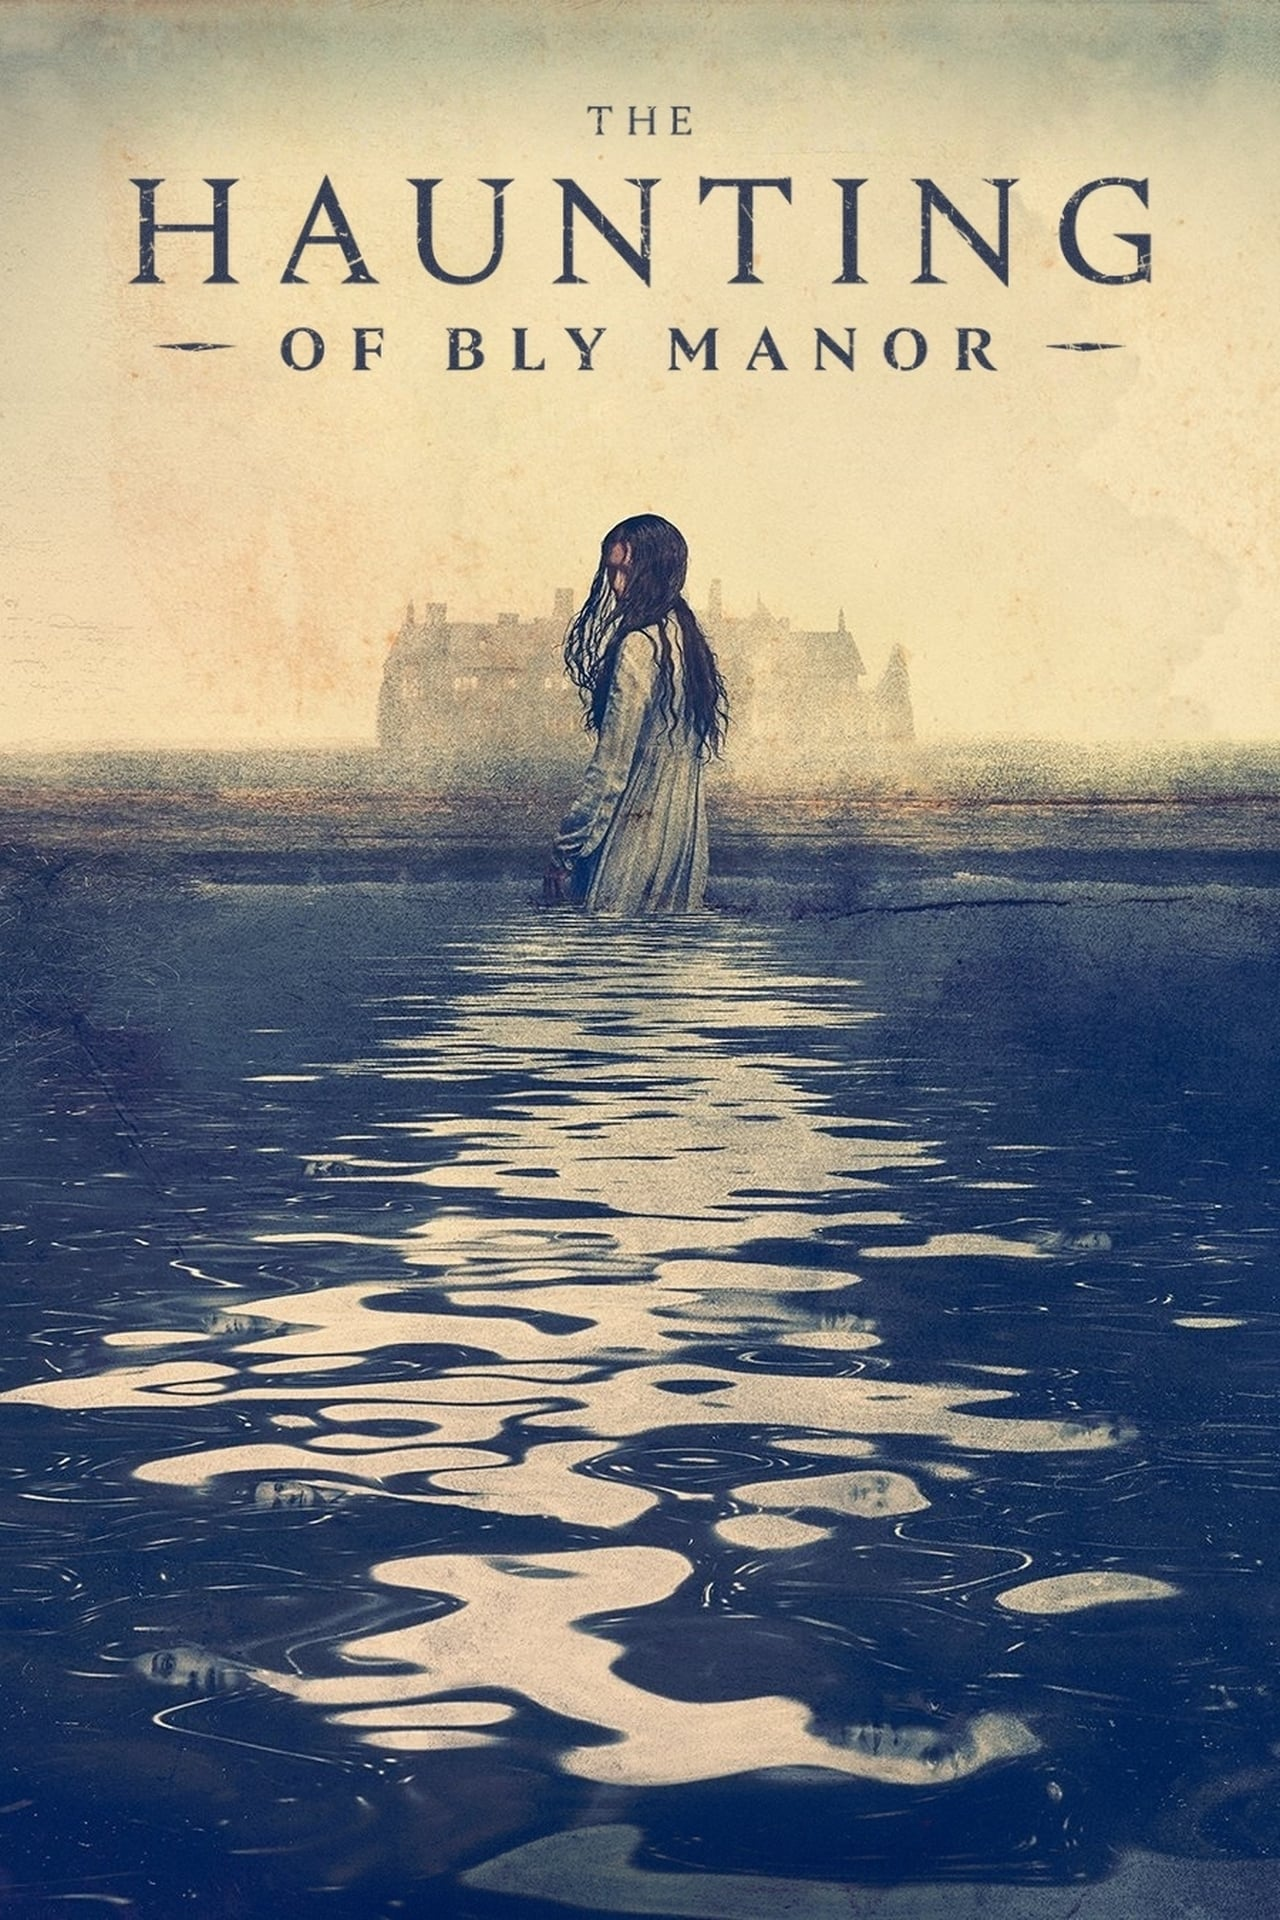 Download NetFlix The Haunting of Bly Manor 2020 (Season 1) Dual Audio {Hindi-English} 720p WeB-DL HD [300MB]